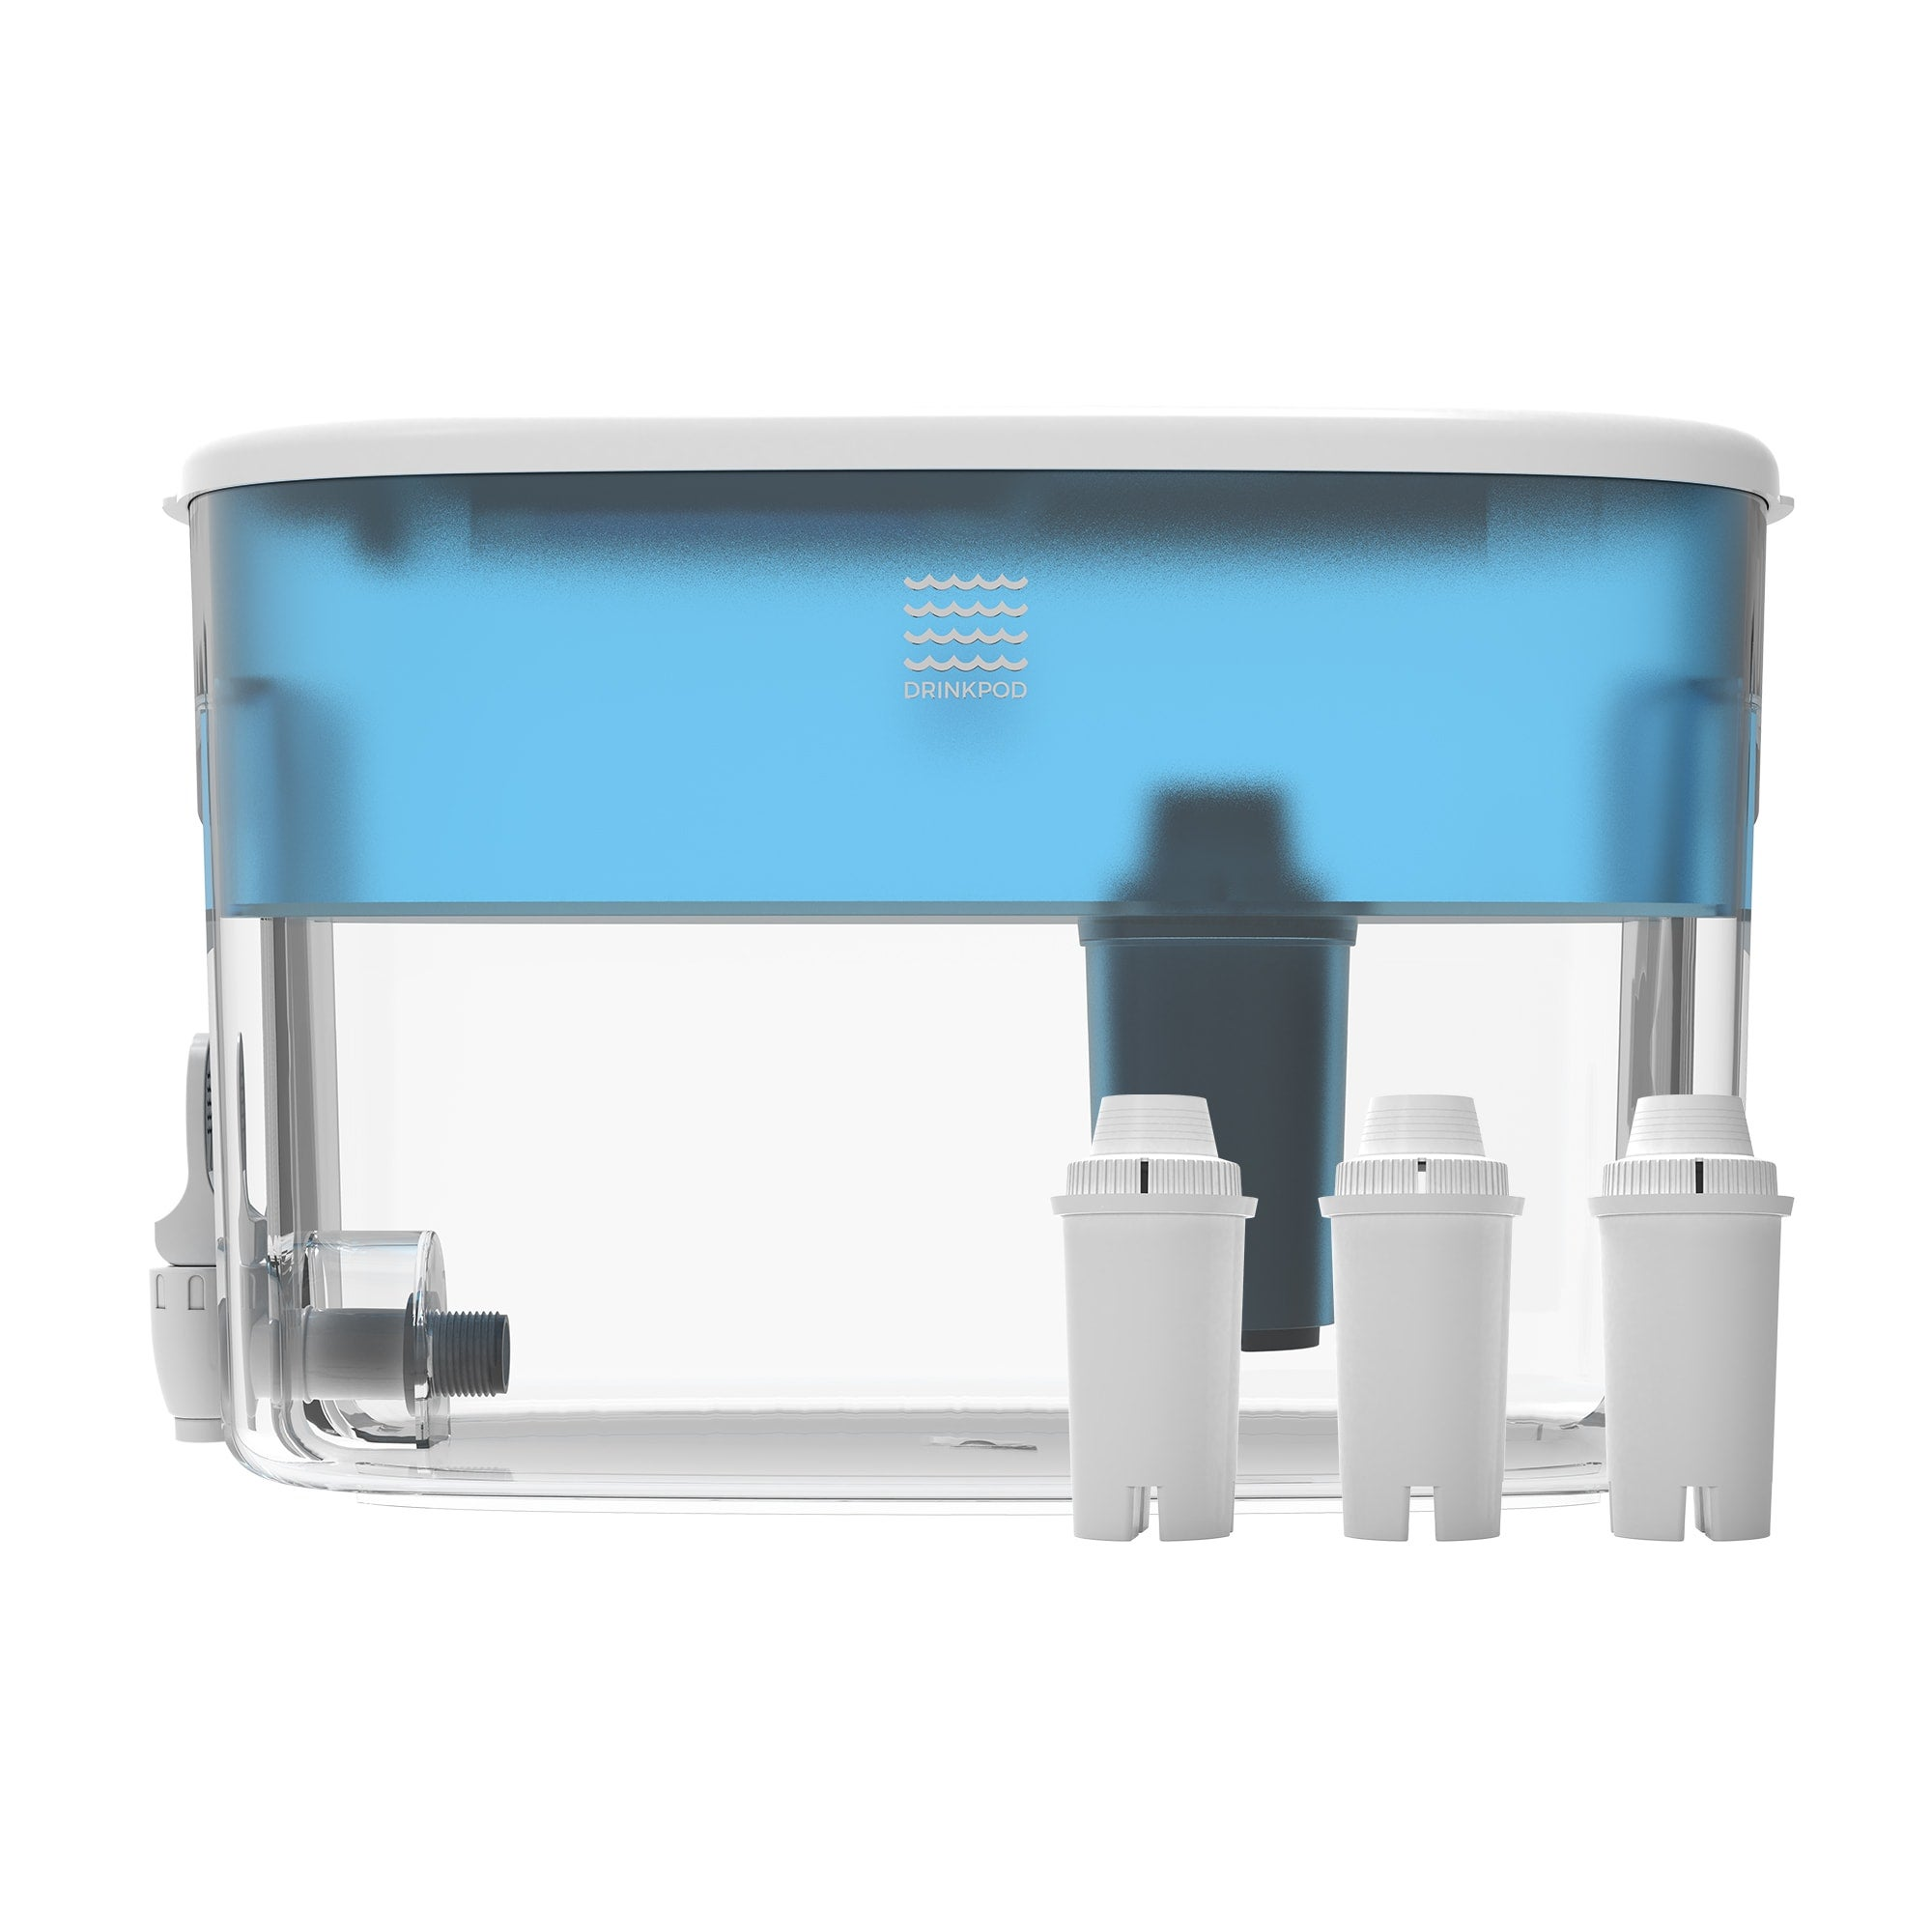 Water dispenser that is clear on the bottom half and blue on the top half. Comes with three water filters.